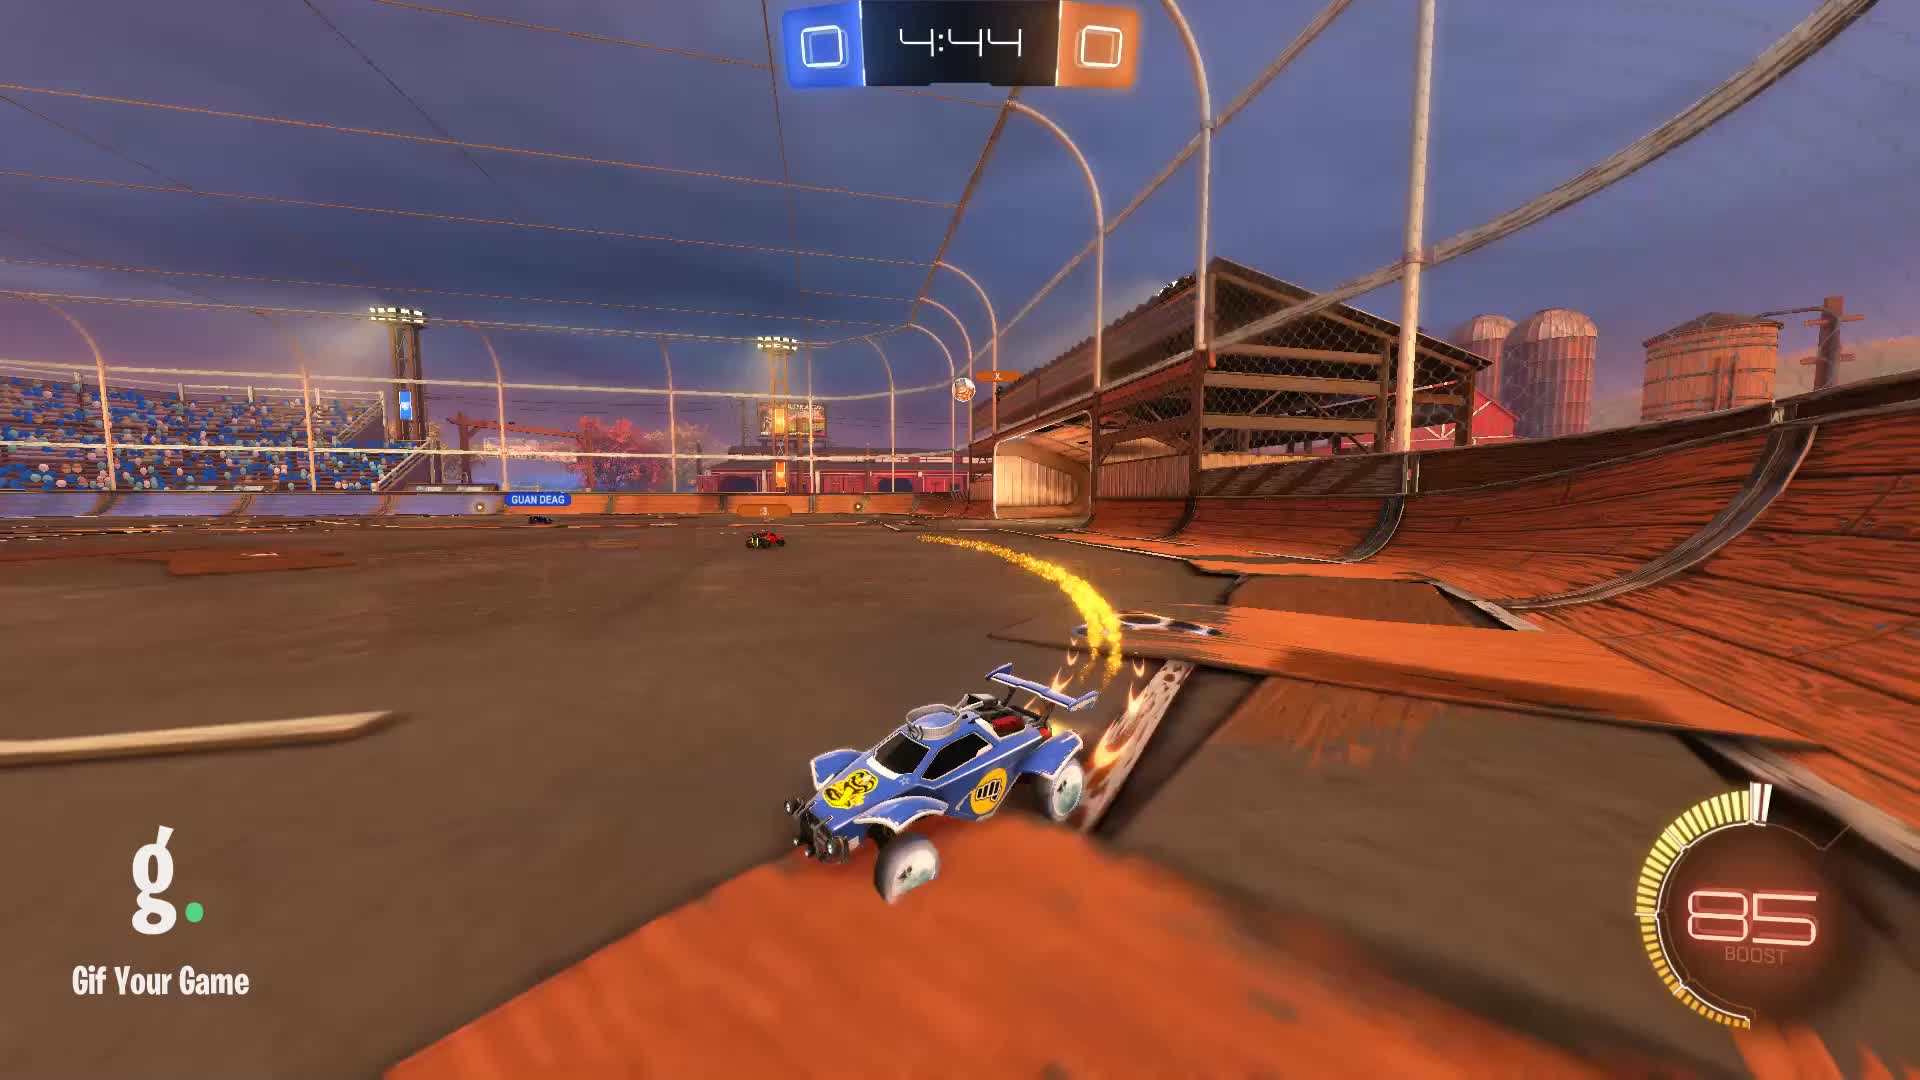 Gif Your Game, GifYourGame, Goal, Rocket League, RocketLeague, TrickyTaco, Goal 1: TrickyTaco GIFs